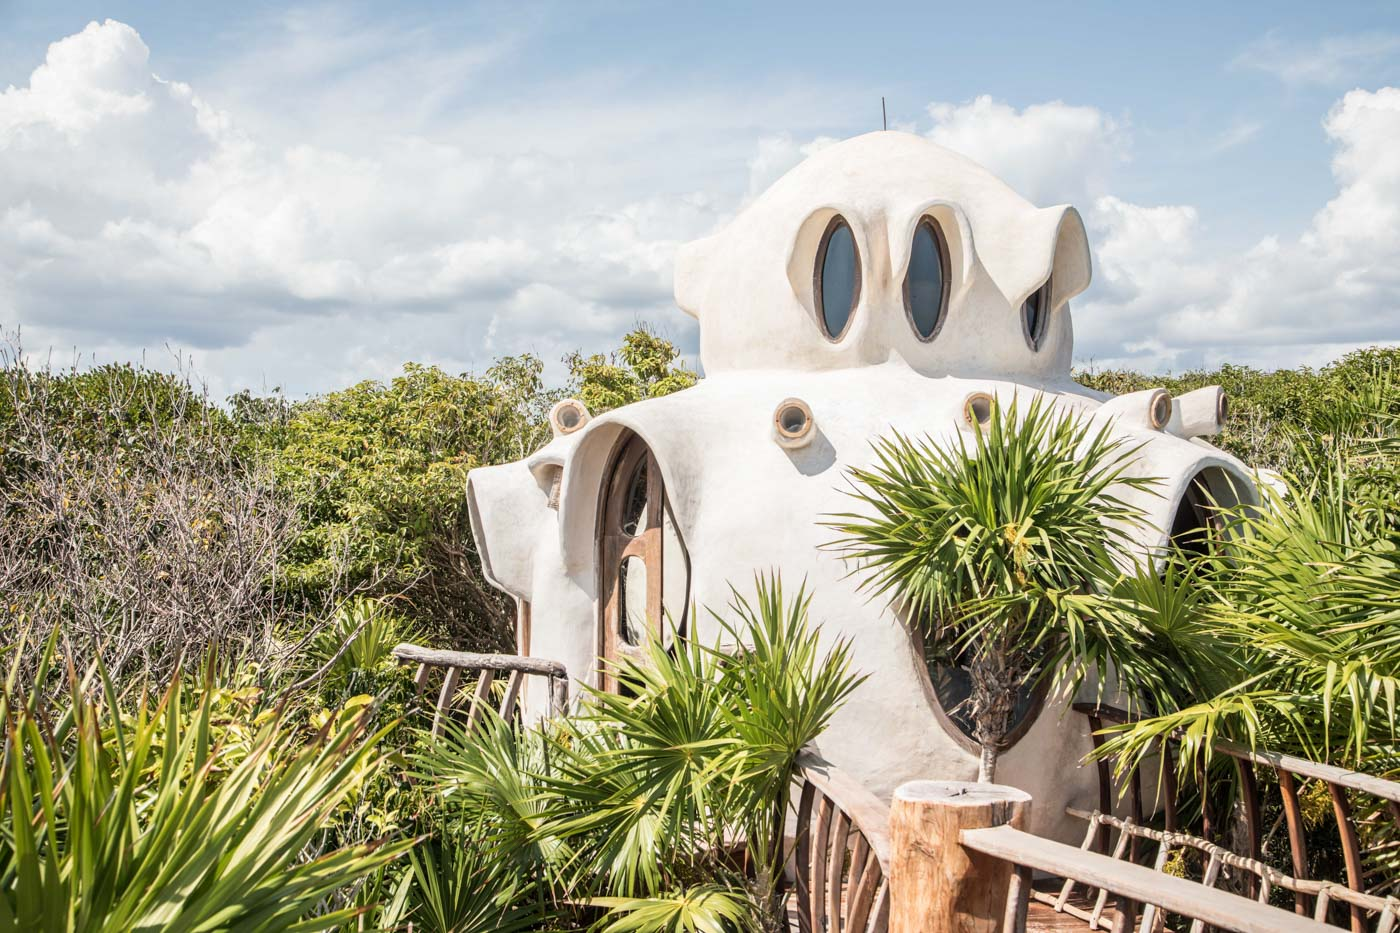 Glamping review of the treehouse at Papaya Playa in Mexico by Kristen Kellogg 7120